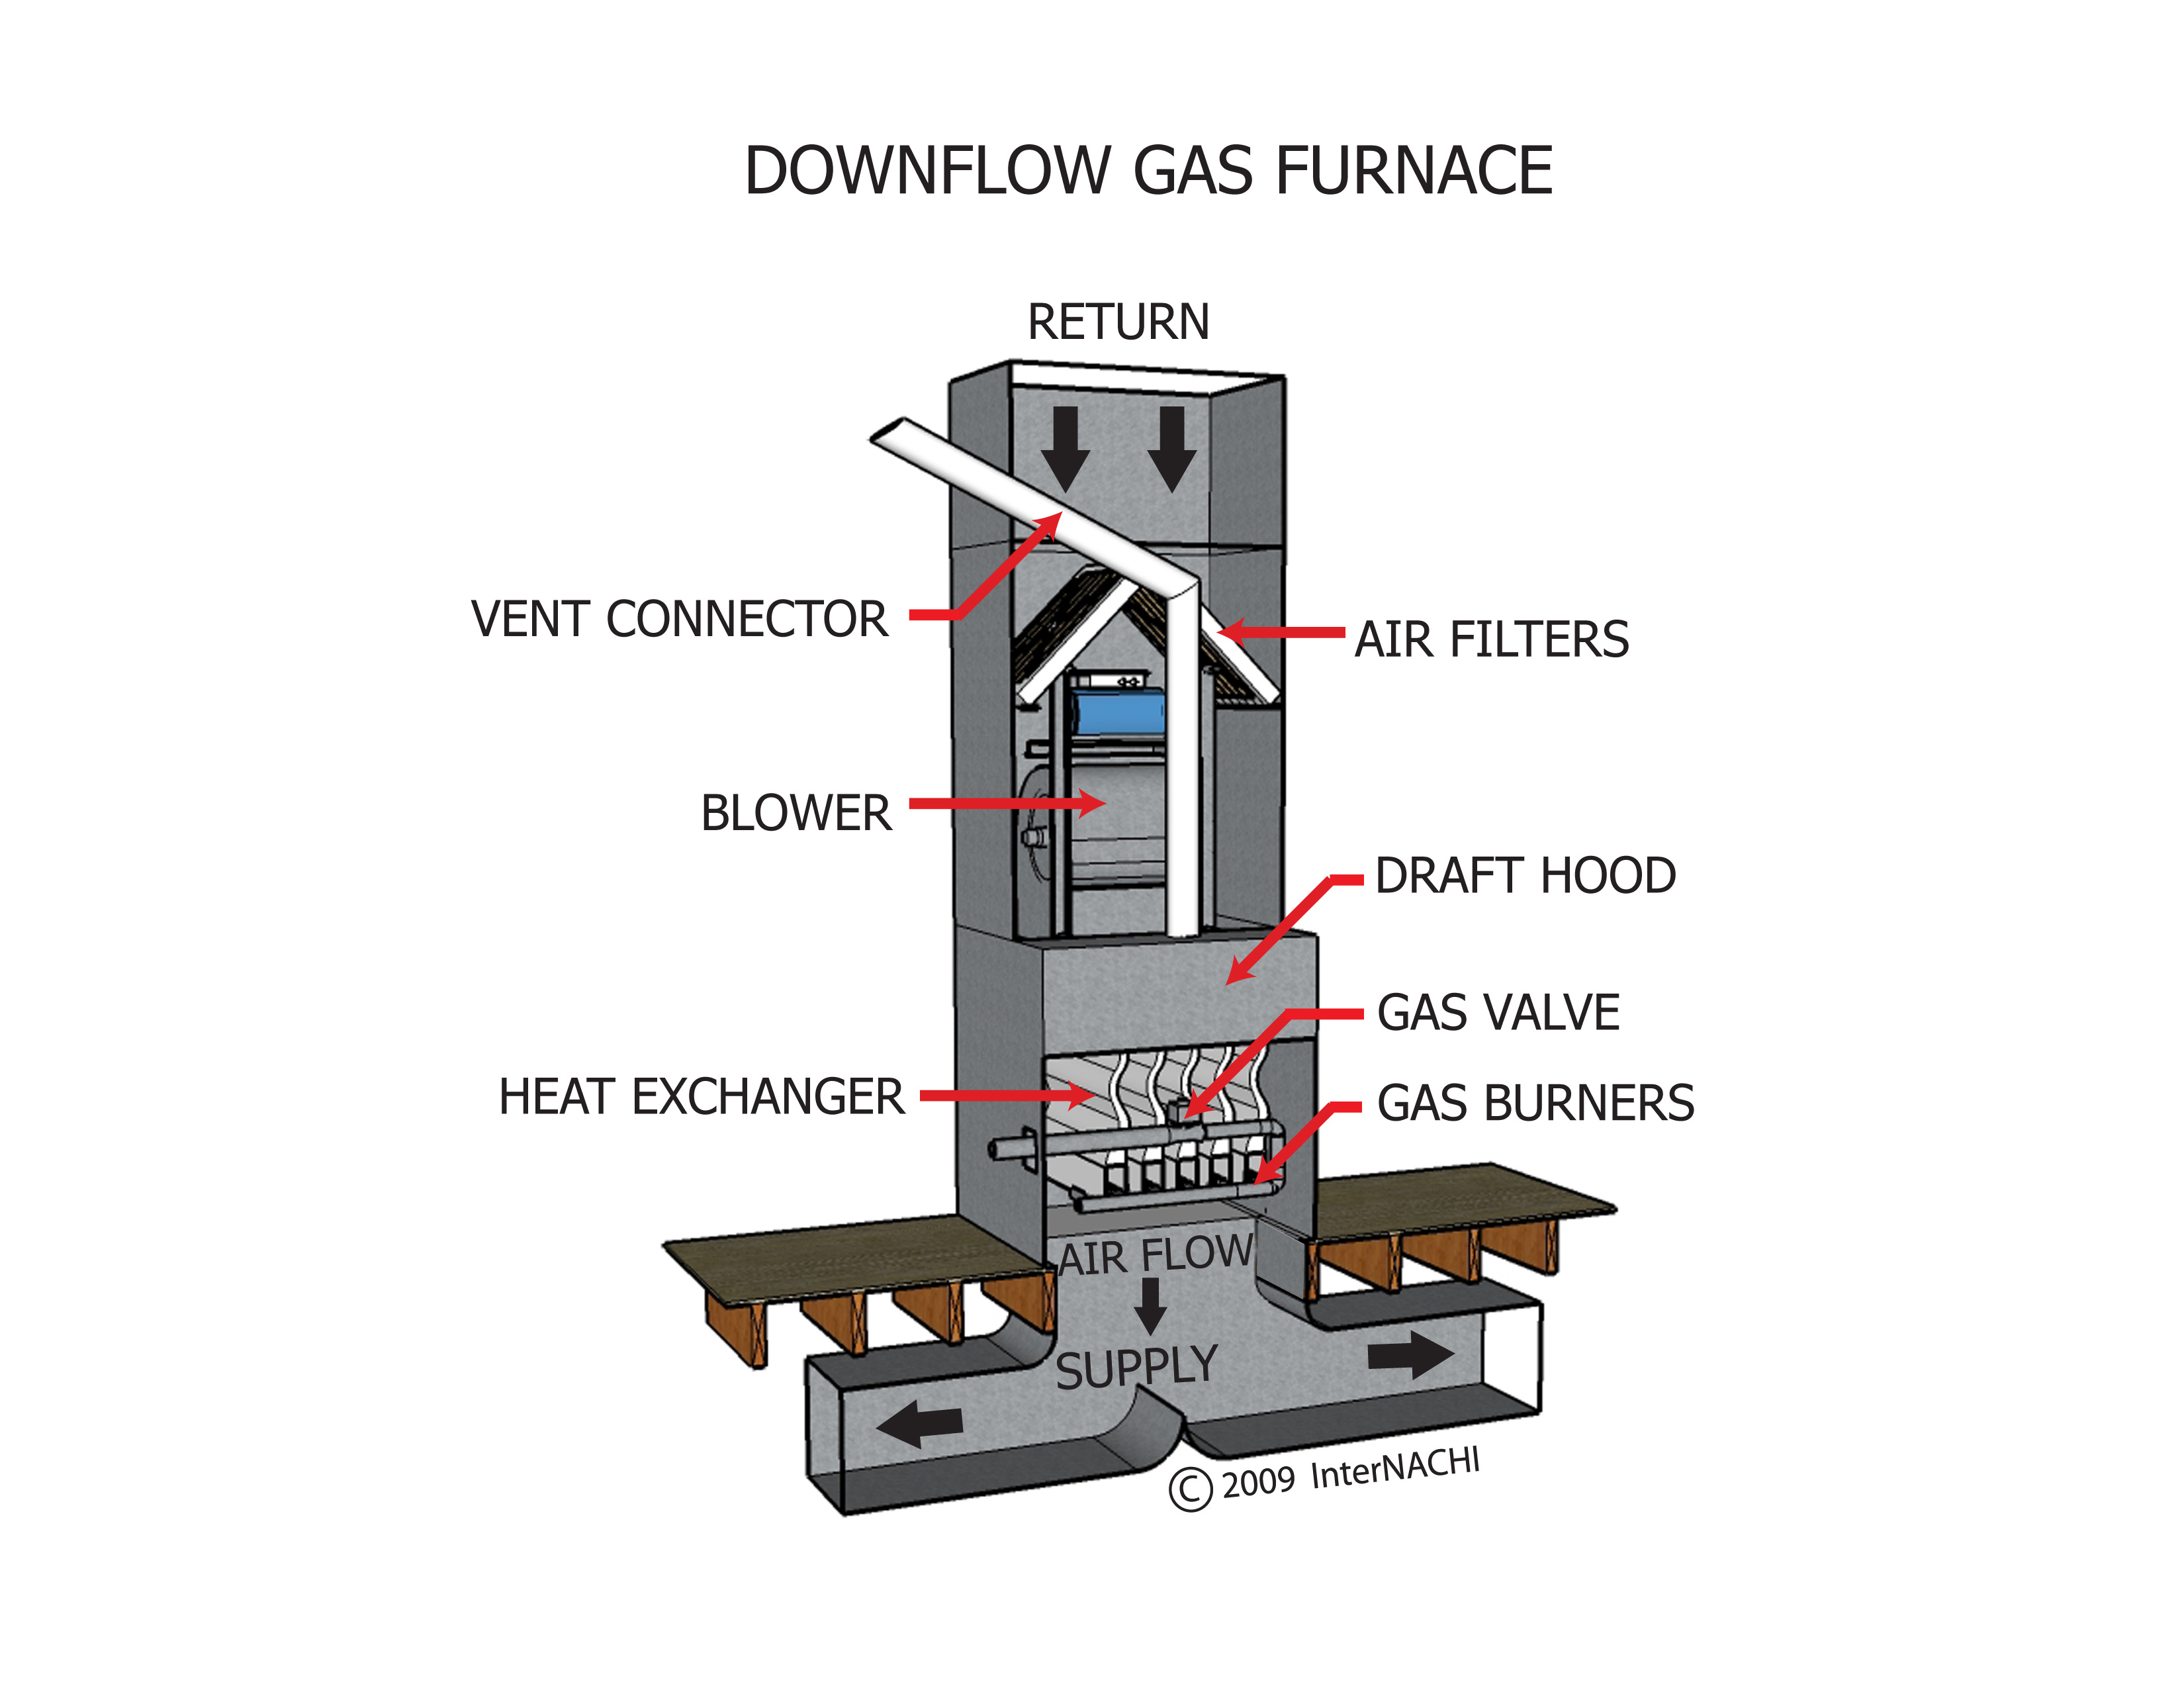 Furnace Diagram On The Furnice Diagram